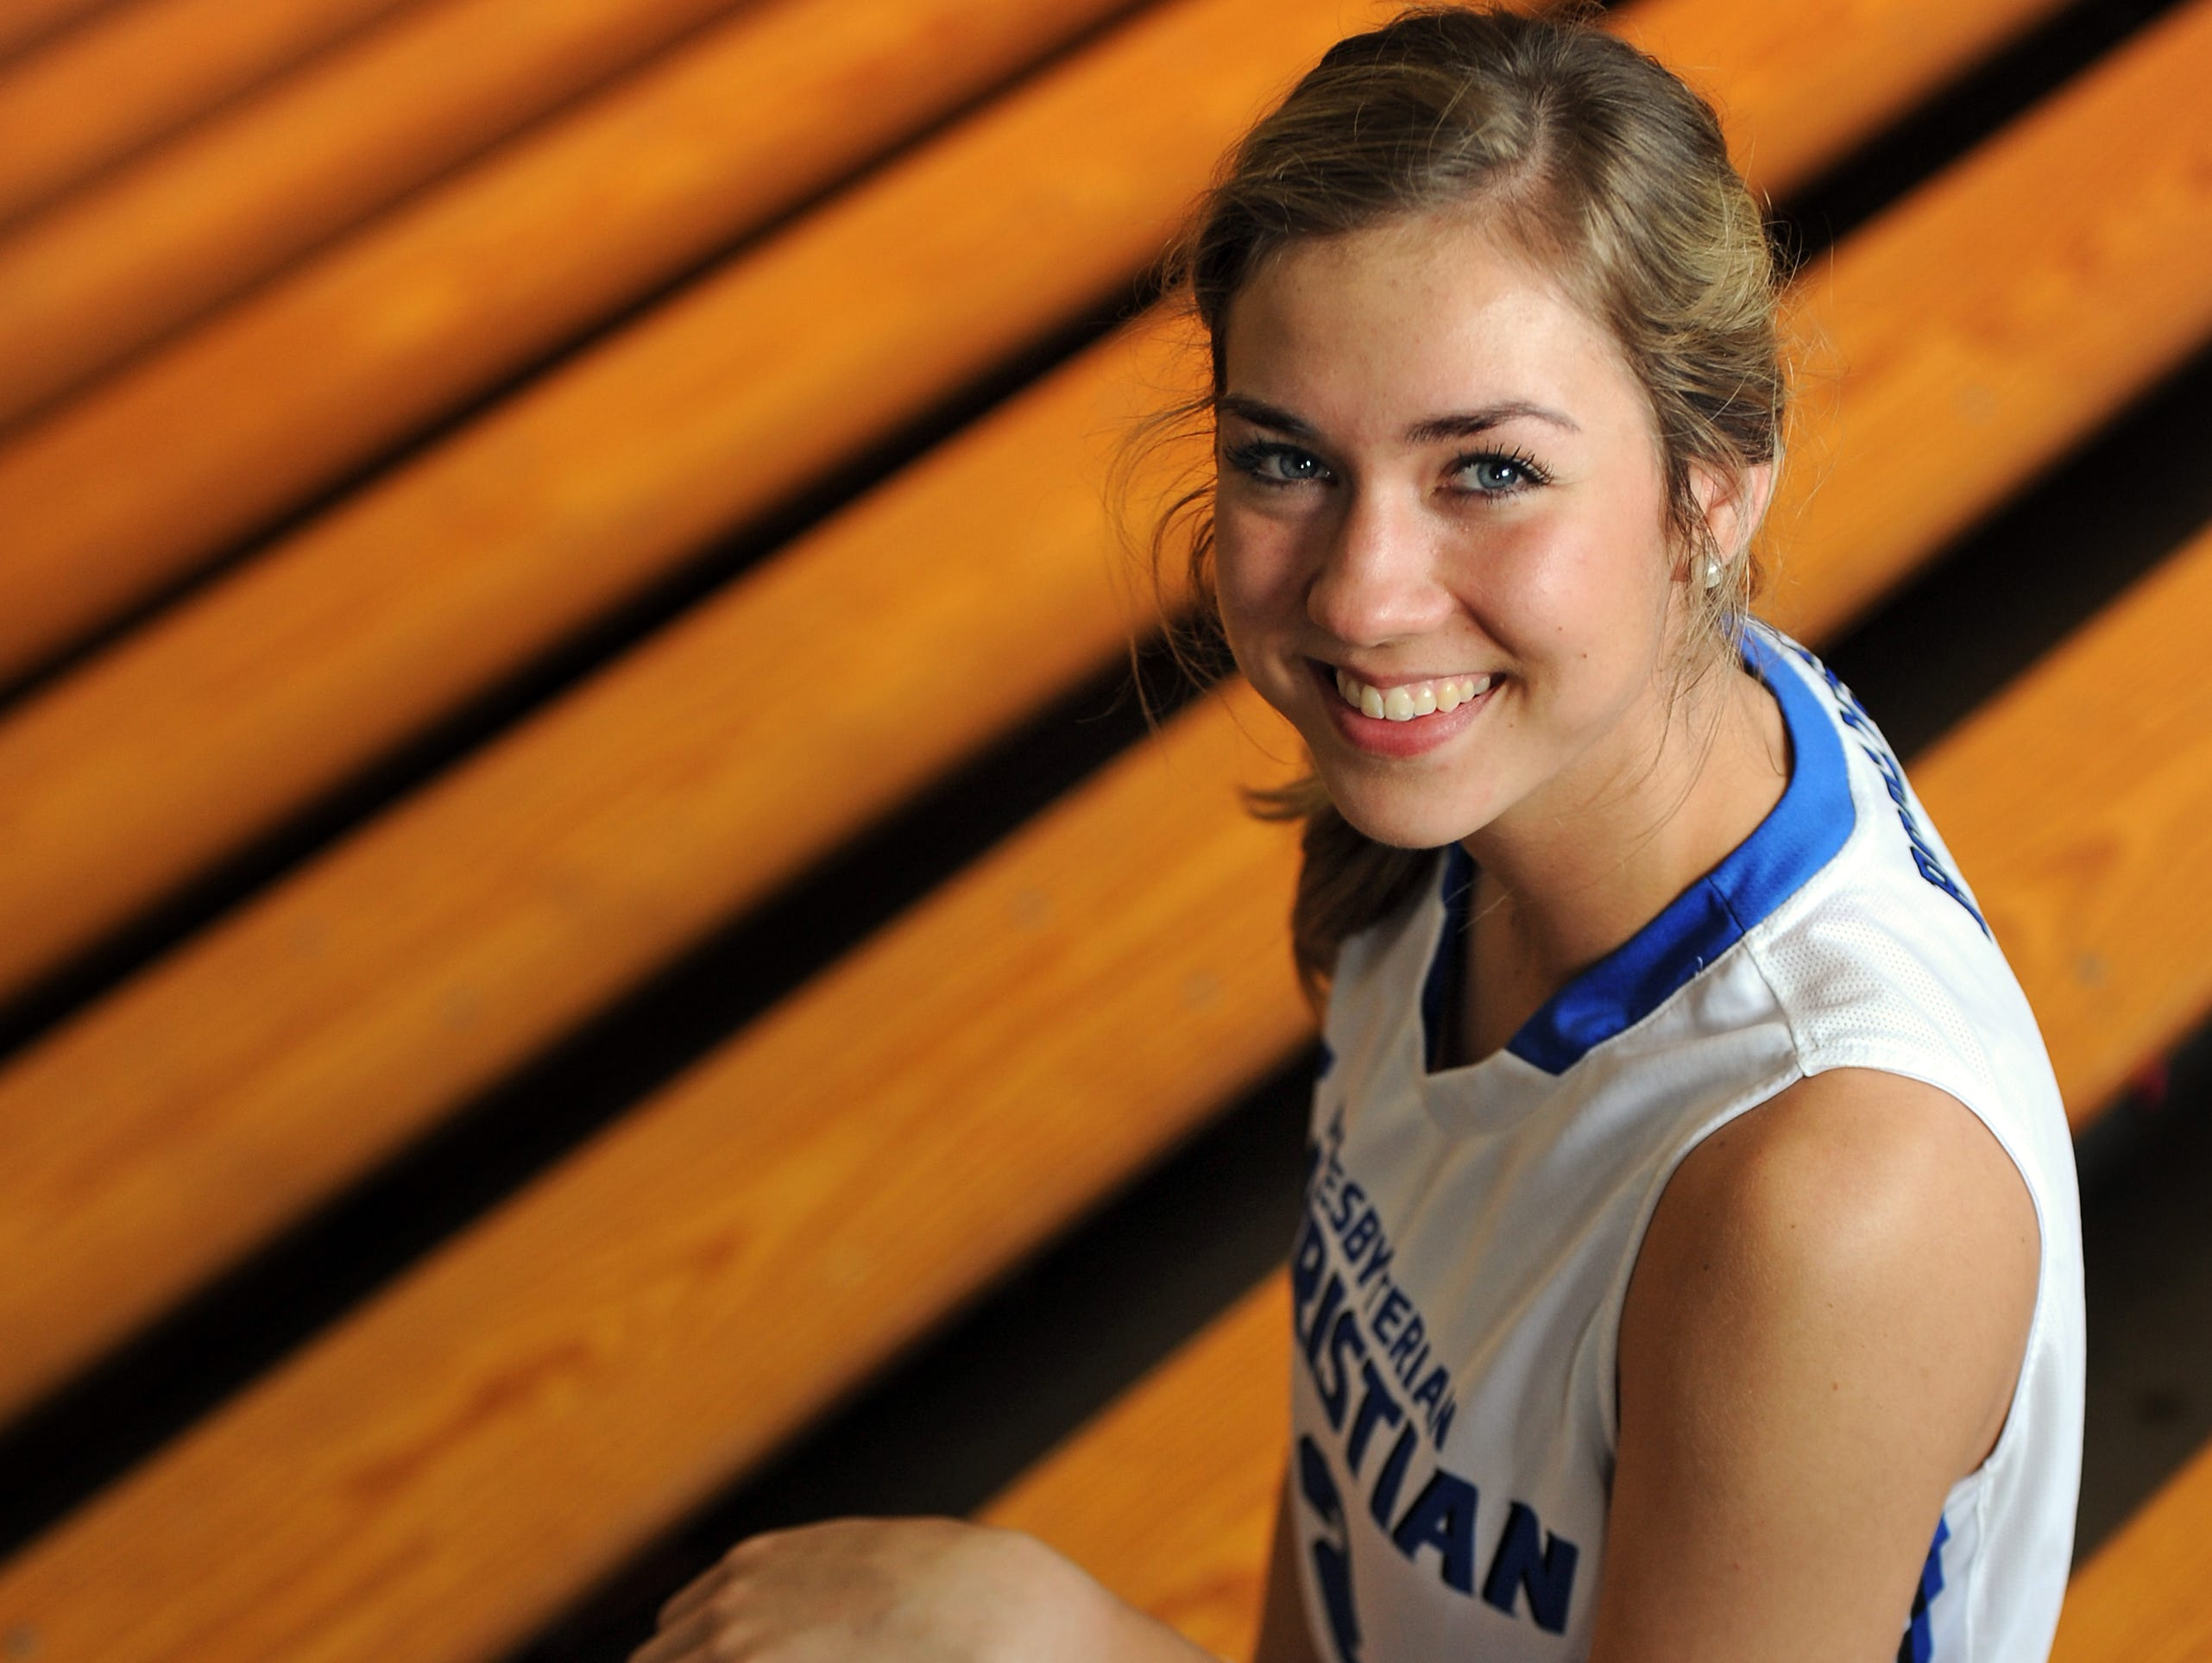 Trista Magee, 18, a senior at Presbyterian Christian School, is this year's Girl Basketball Player of the Year.